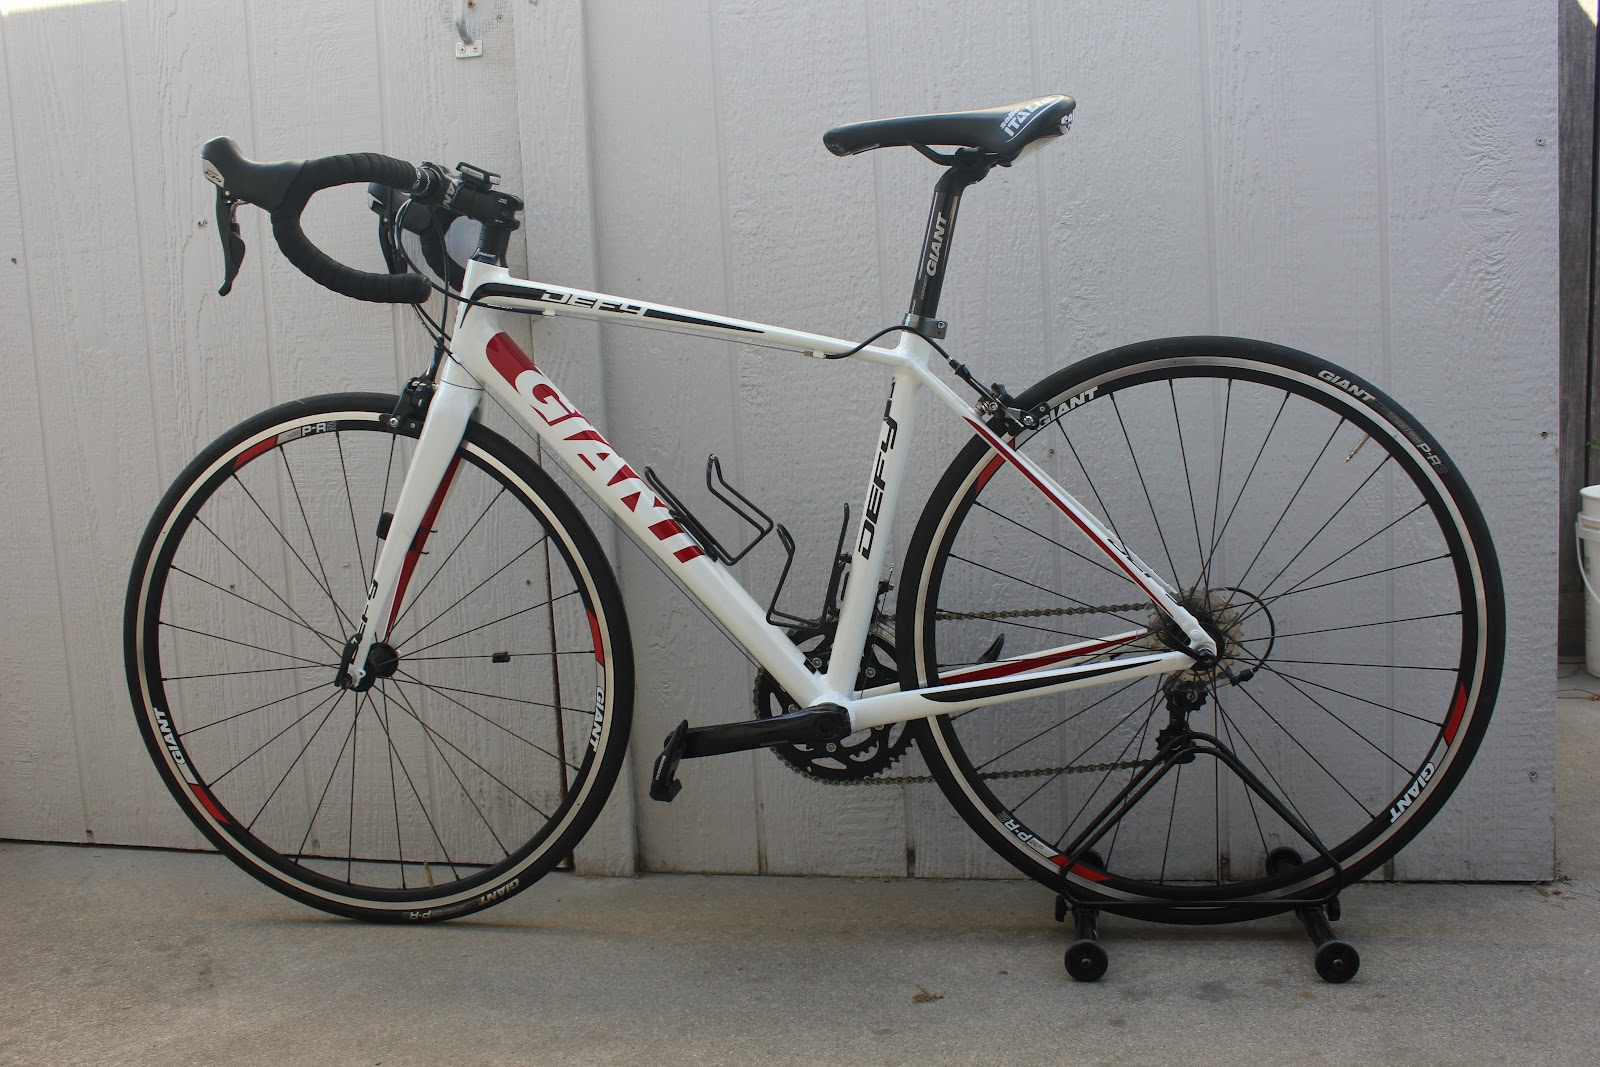 Giant Defy 1 Road Bike Review The Naptime Reviewer